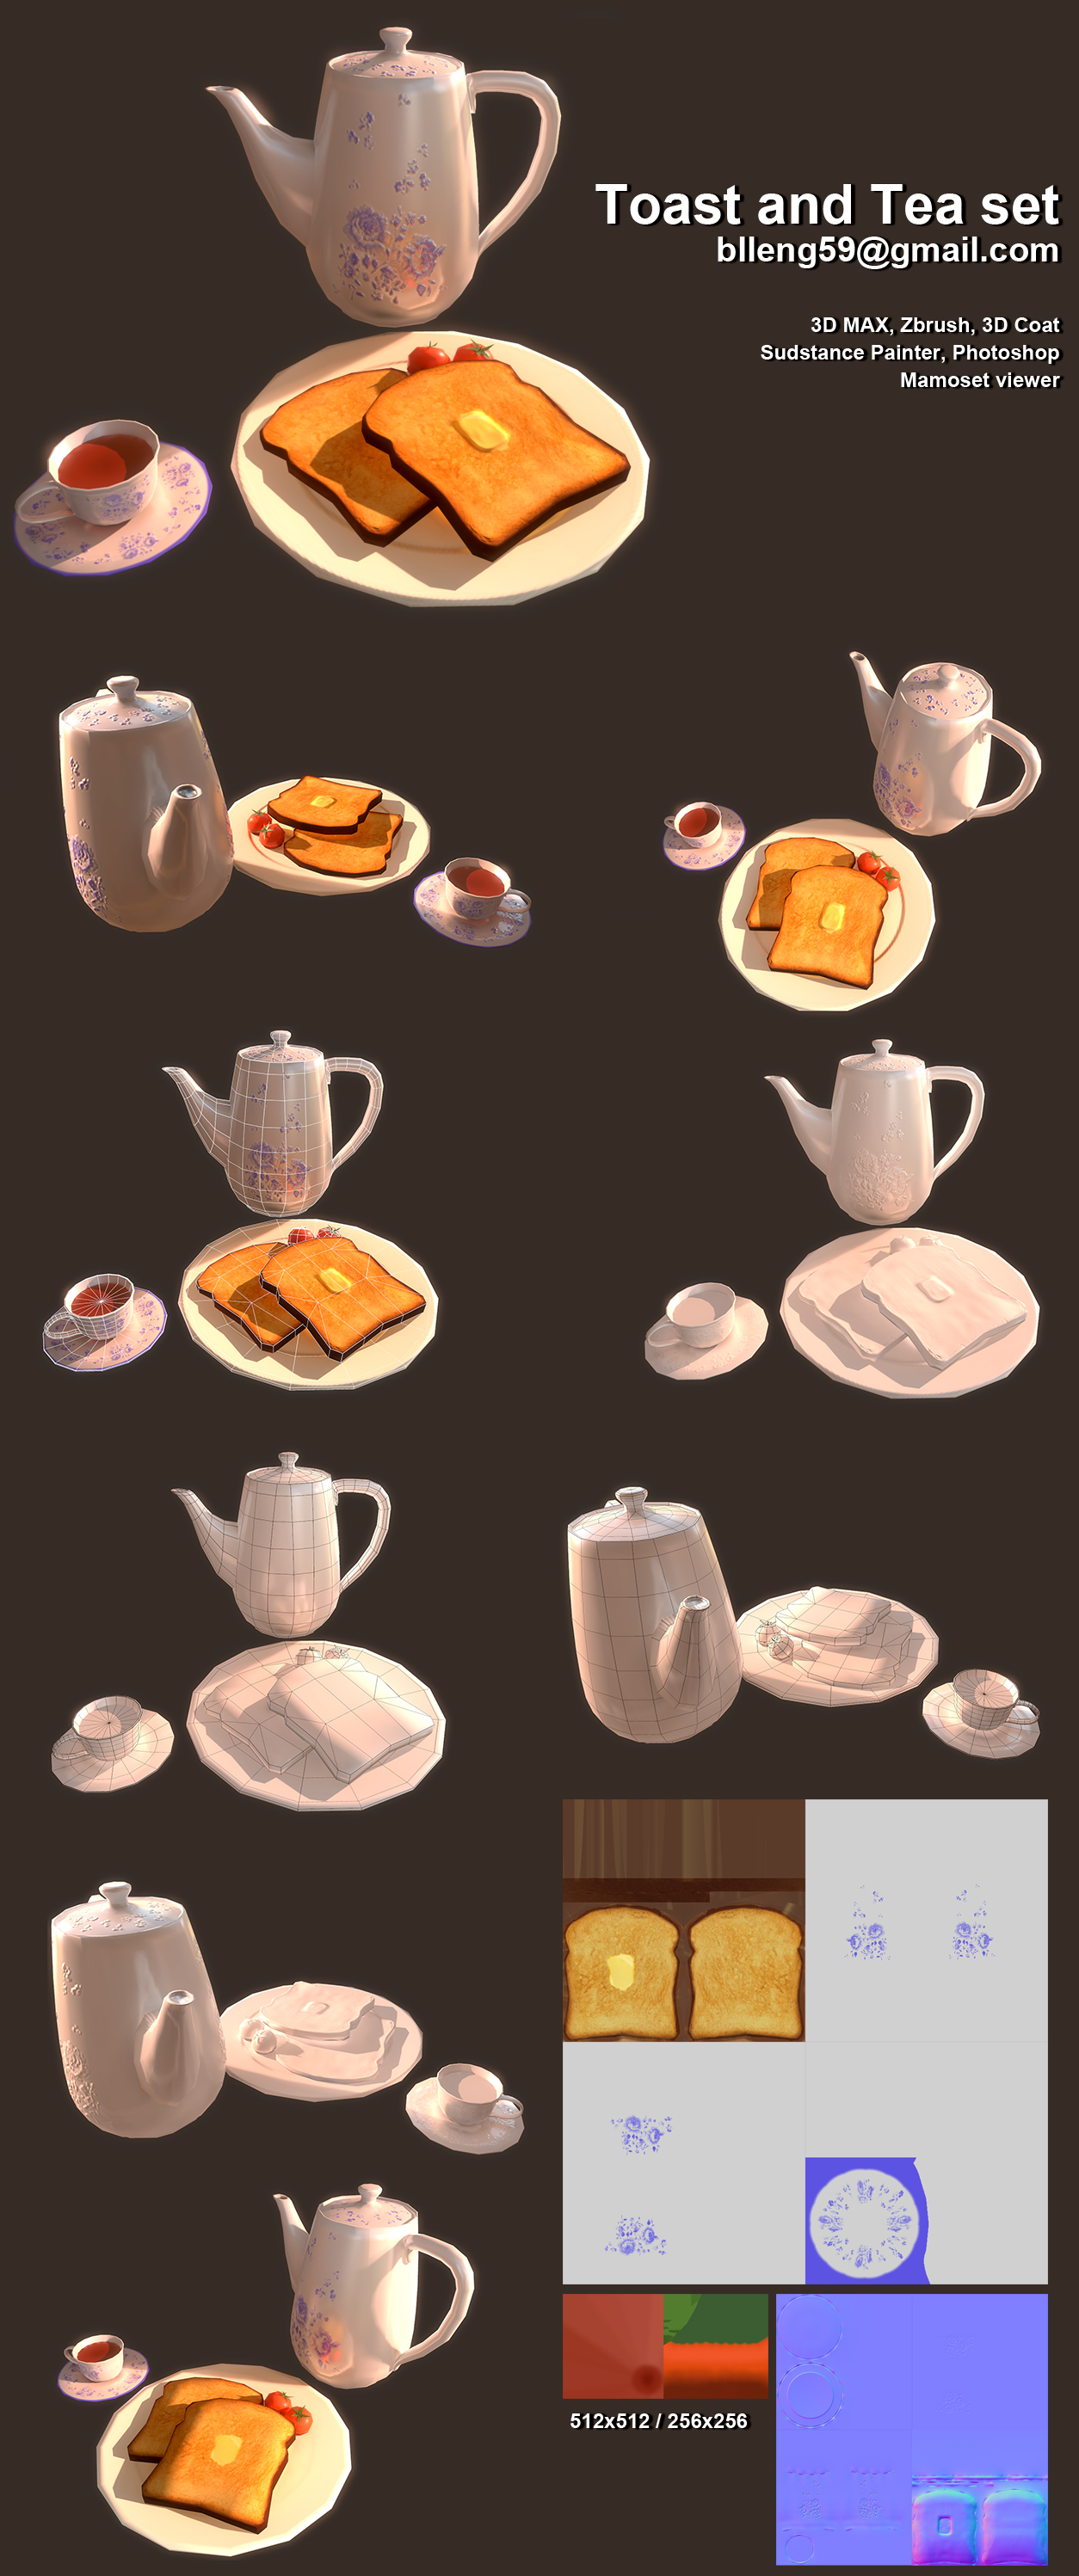 toast and tea set